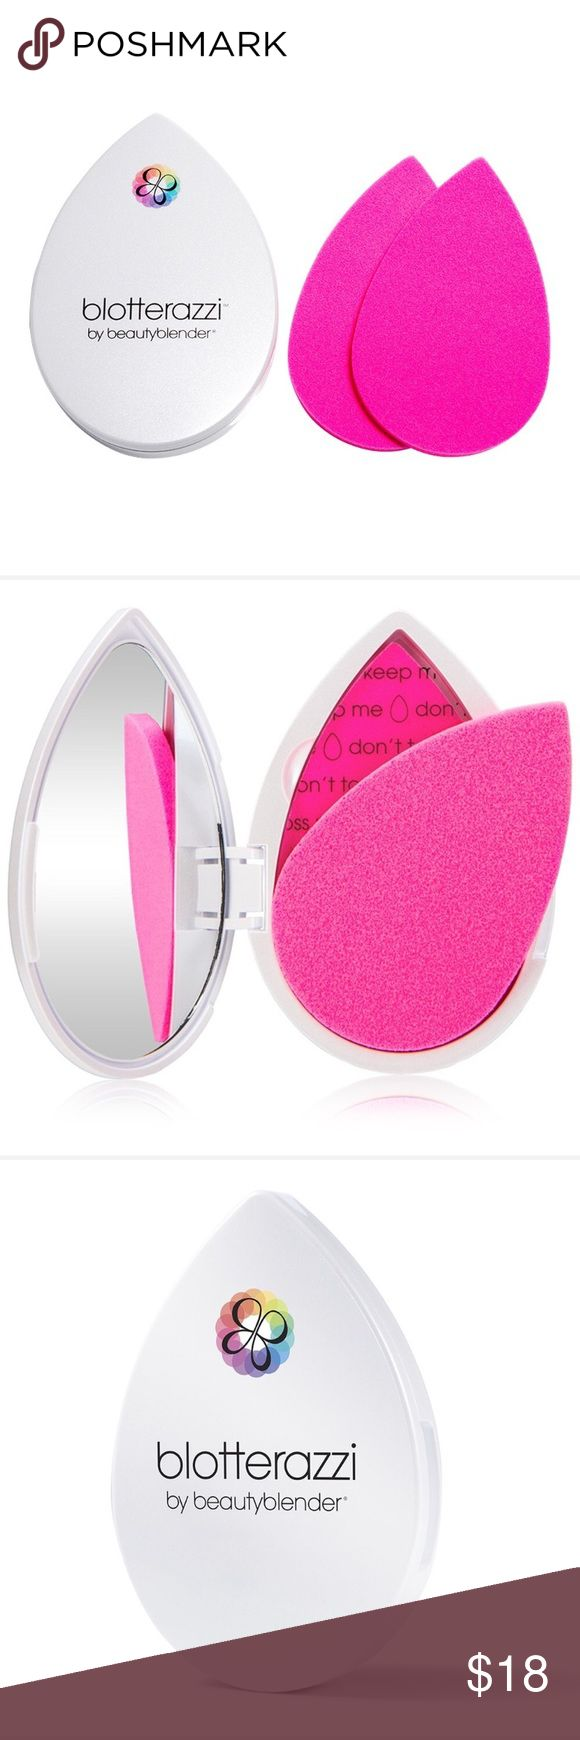 Bloterazzi by Beauty Blender A new approach to plotting paper! Reusable blotting pads in the same material as the famous original beauty blender. This is completely new. Box is not included. beauty blender Makeup Brushes & Tools